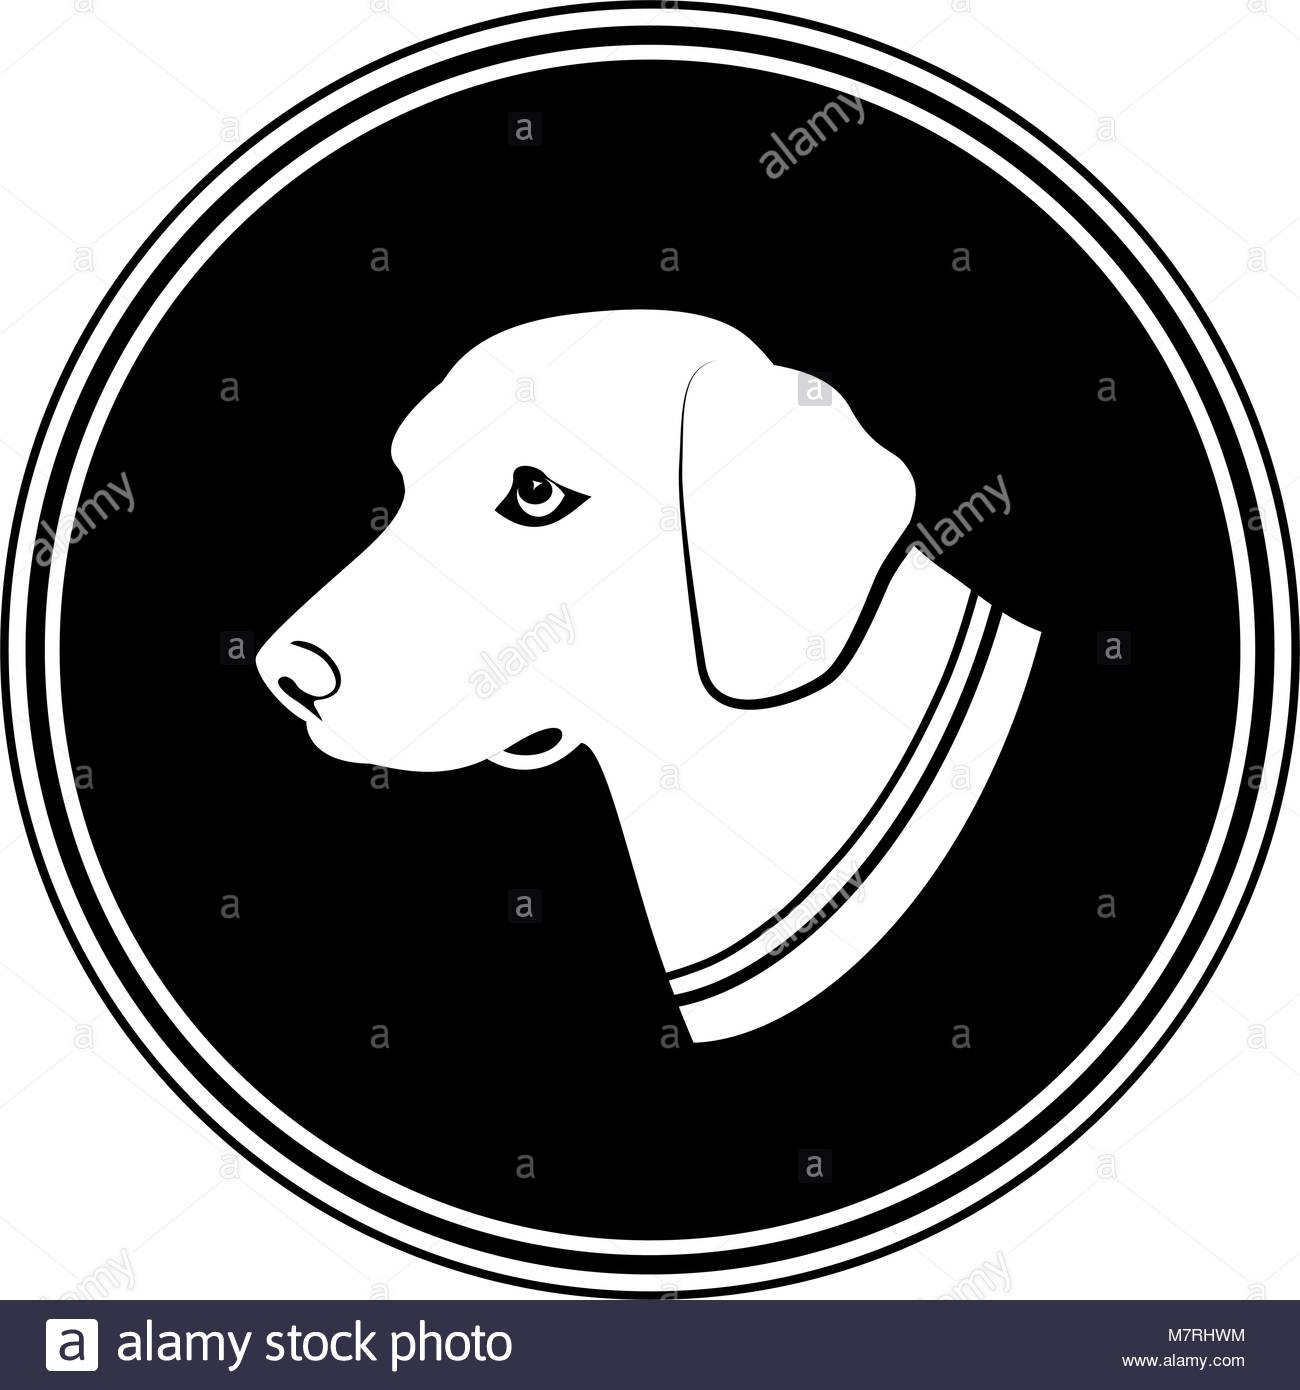 1300x1390 Illustration Sign Of White Dog's Head In Black Round. Silhouette